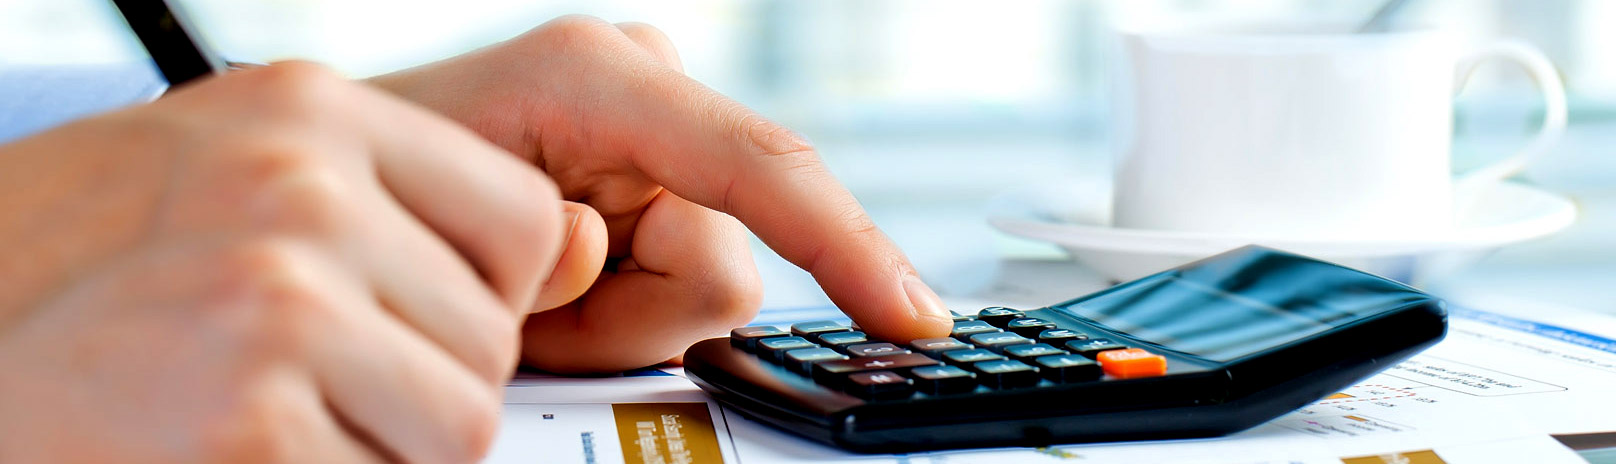 Bookkeeping and Tax Services